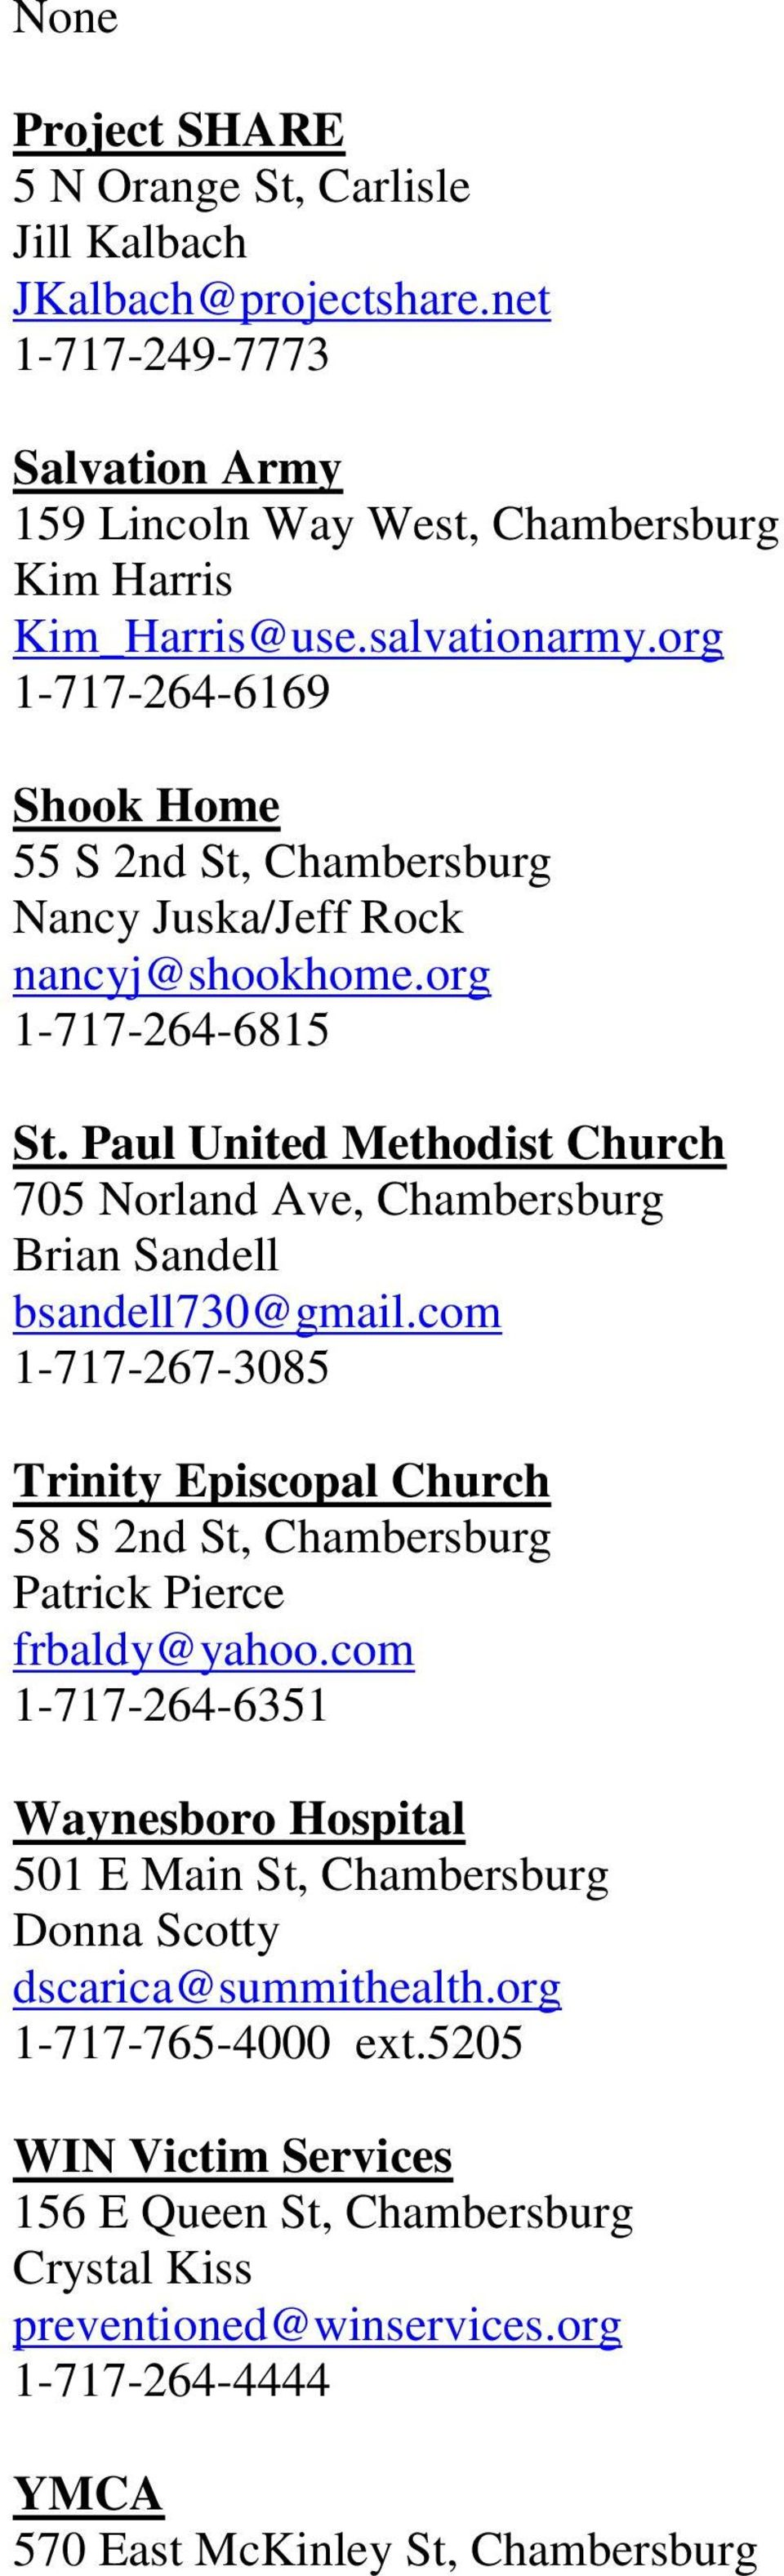 Paul United Methodist Church 705 Norland Ave, Chambersburg Brian Sandell bsandell730@gmail.com 1-717-267-3085 Trinity Episcopal Church 58 S 2nd St, Chambersburg Patrick Pierce frbaldy@yahoo.